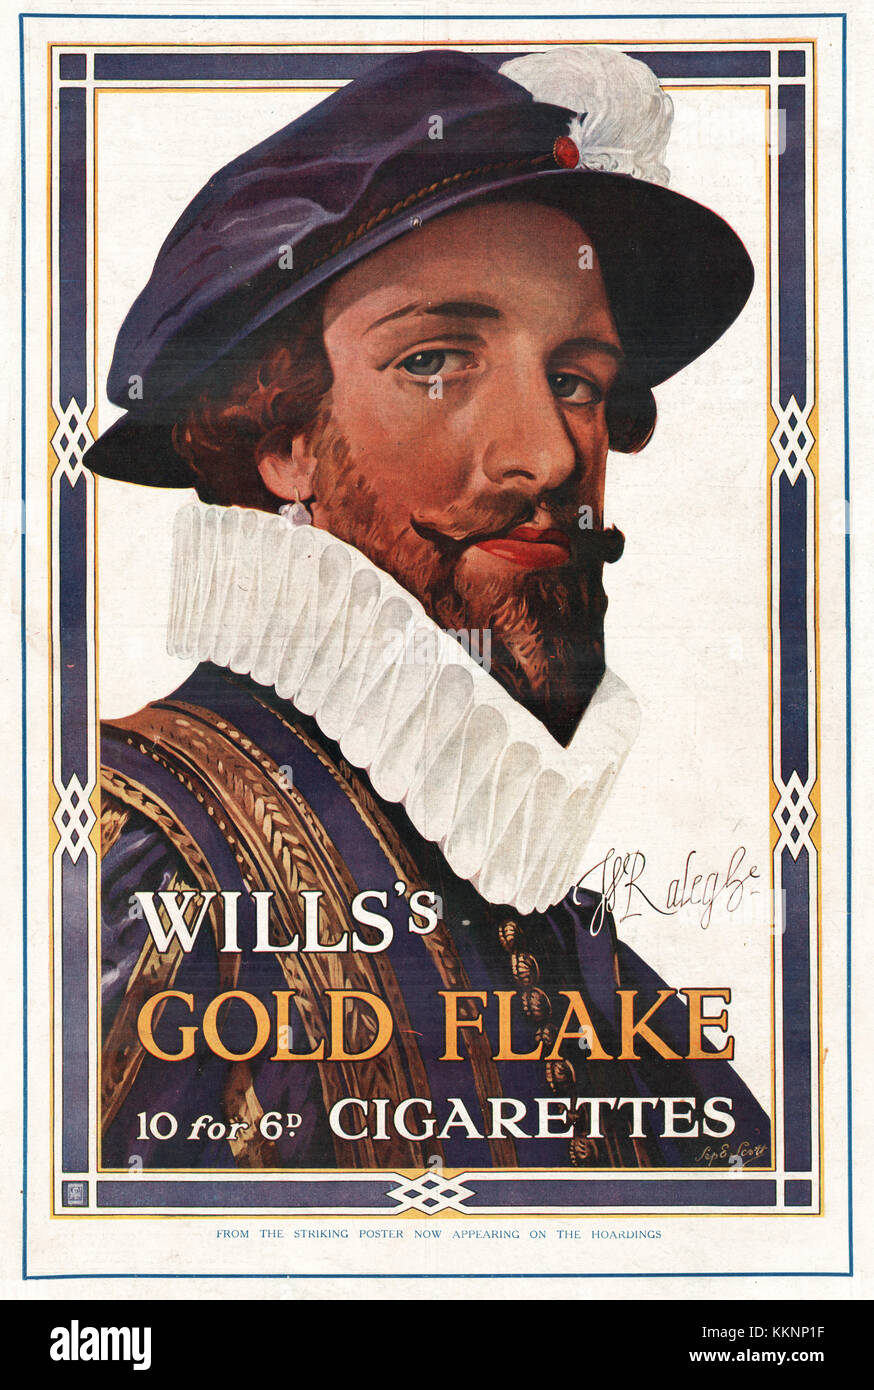 1924 UK Magazine Wills's Gold Flake Cigarette Advert - Stock Image